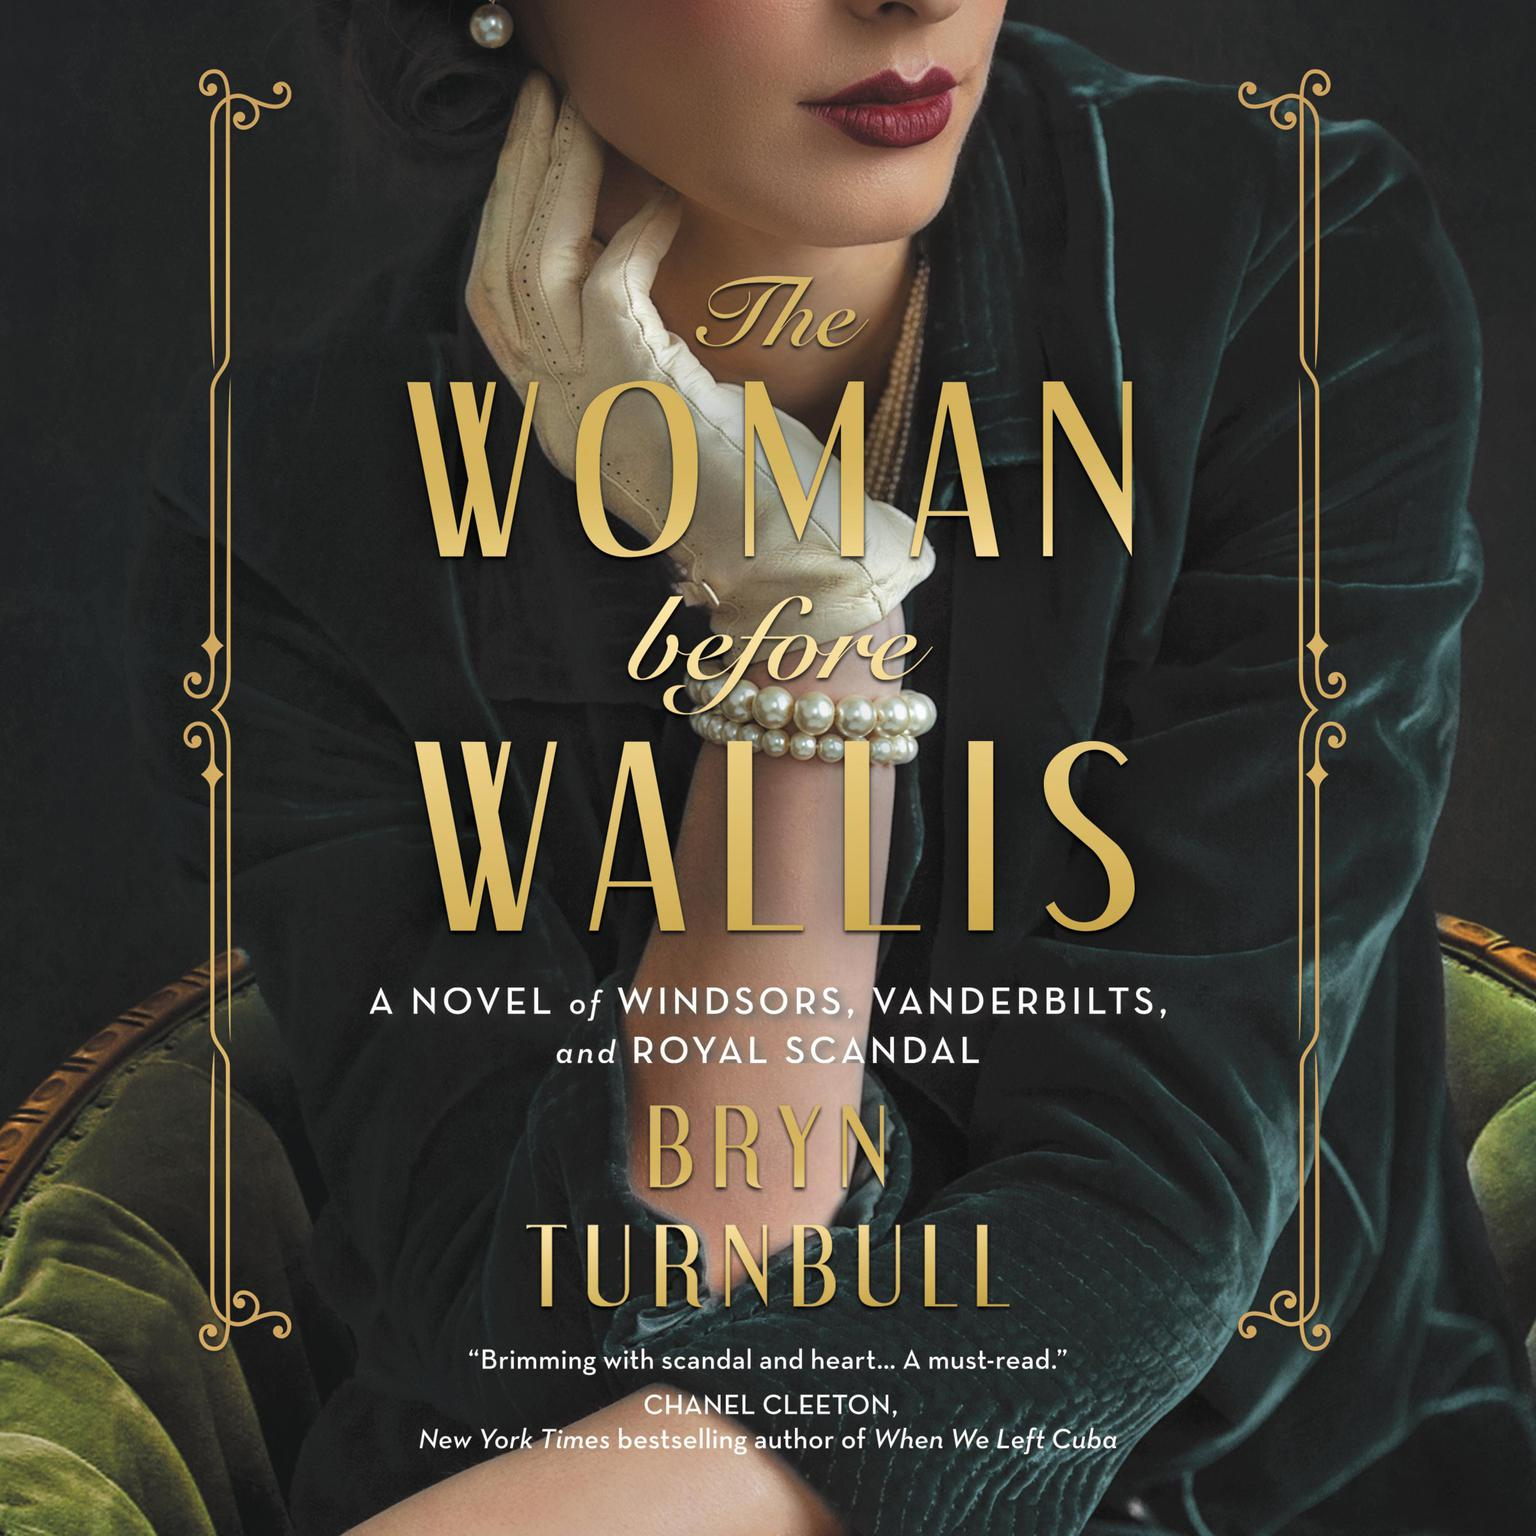 The Woman Before Wallis: A Novel of Windsors, Vanderbilts, and Royal Scandal Audiobook, by Bryn Turnbull